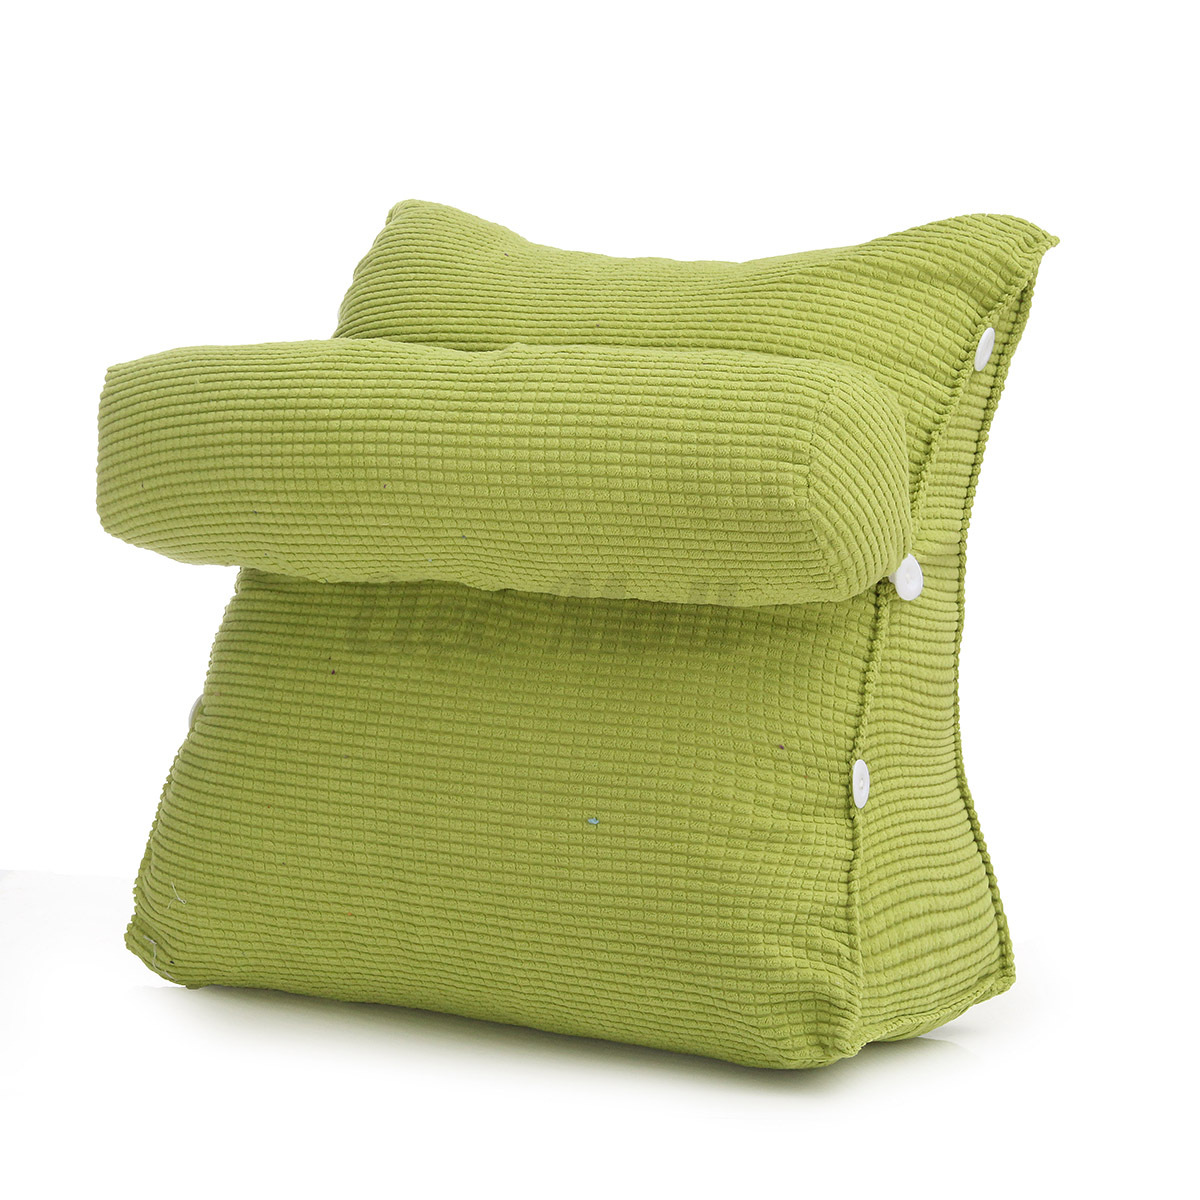 Sofa bed office chair cushion adjustable neck support back for Chair pillow